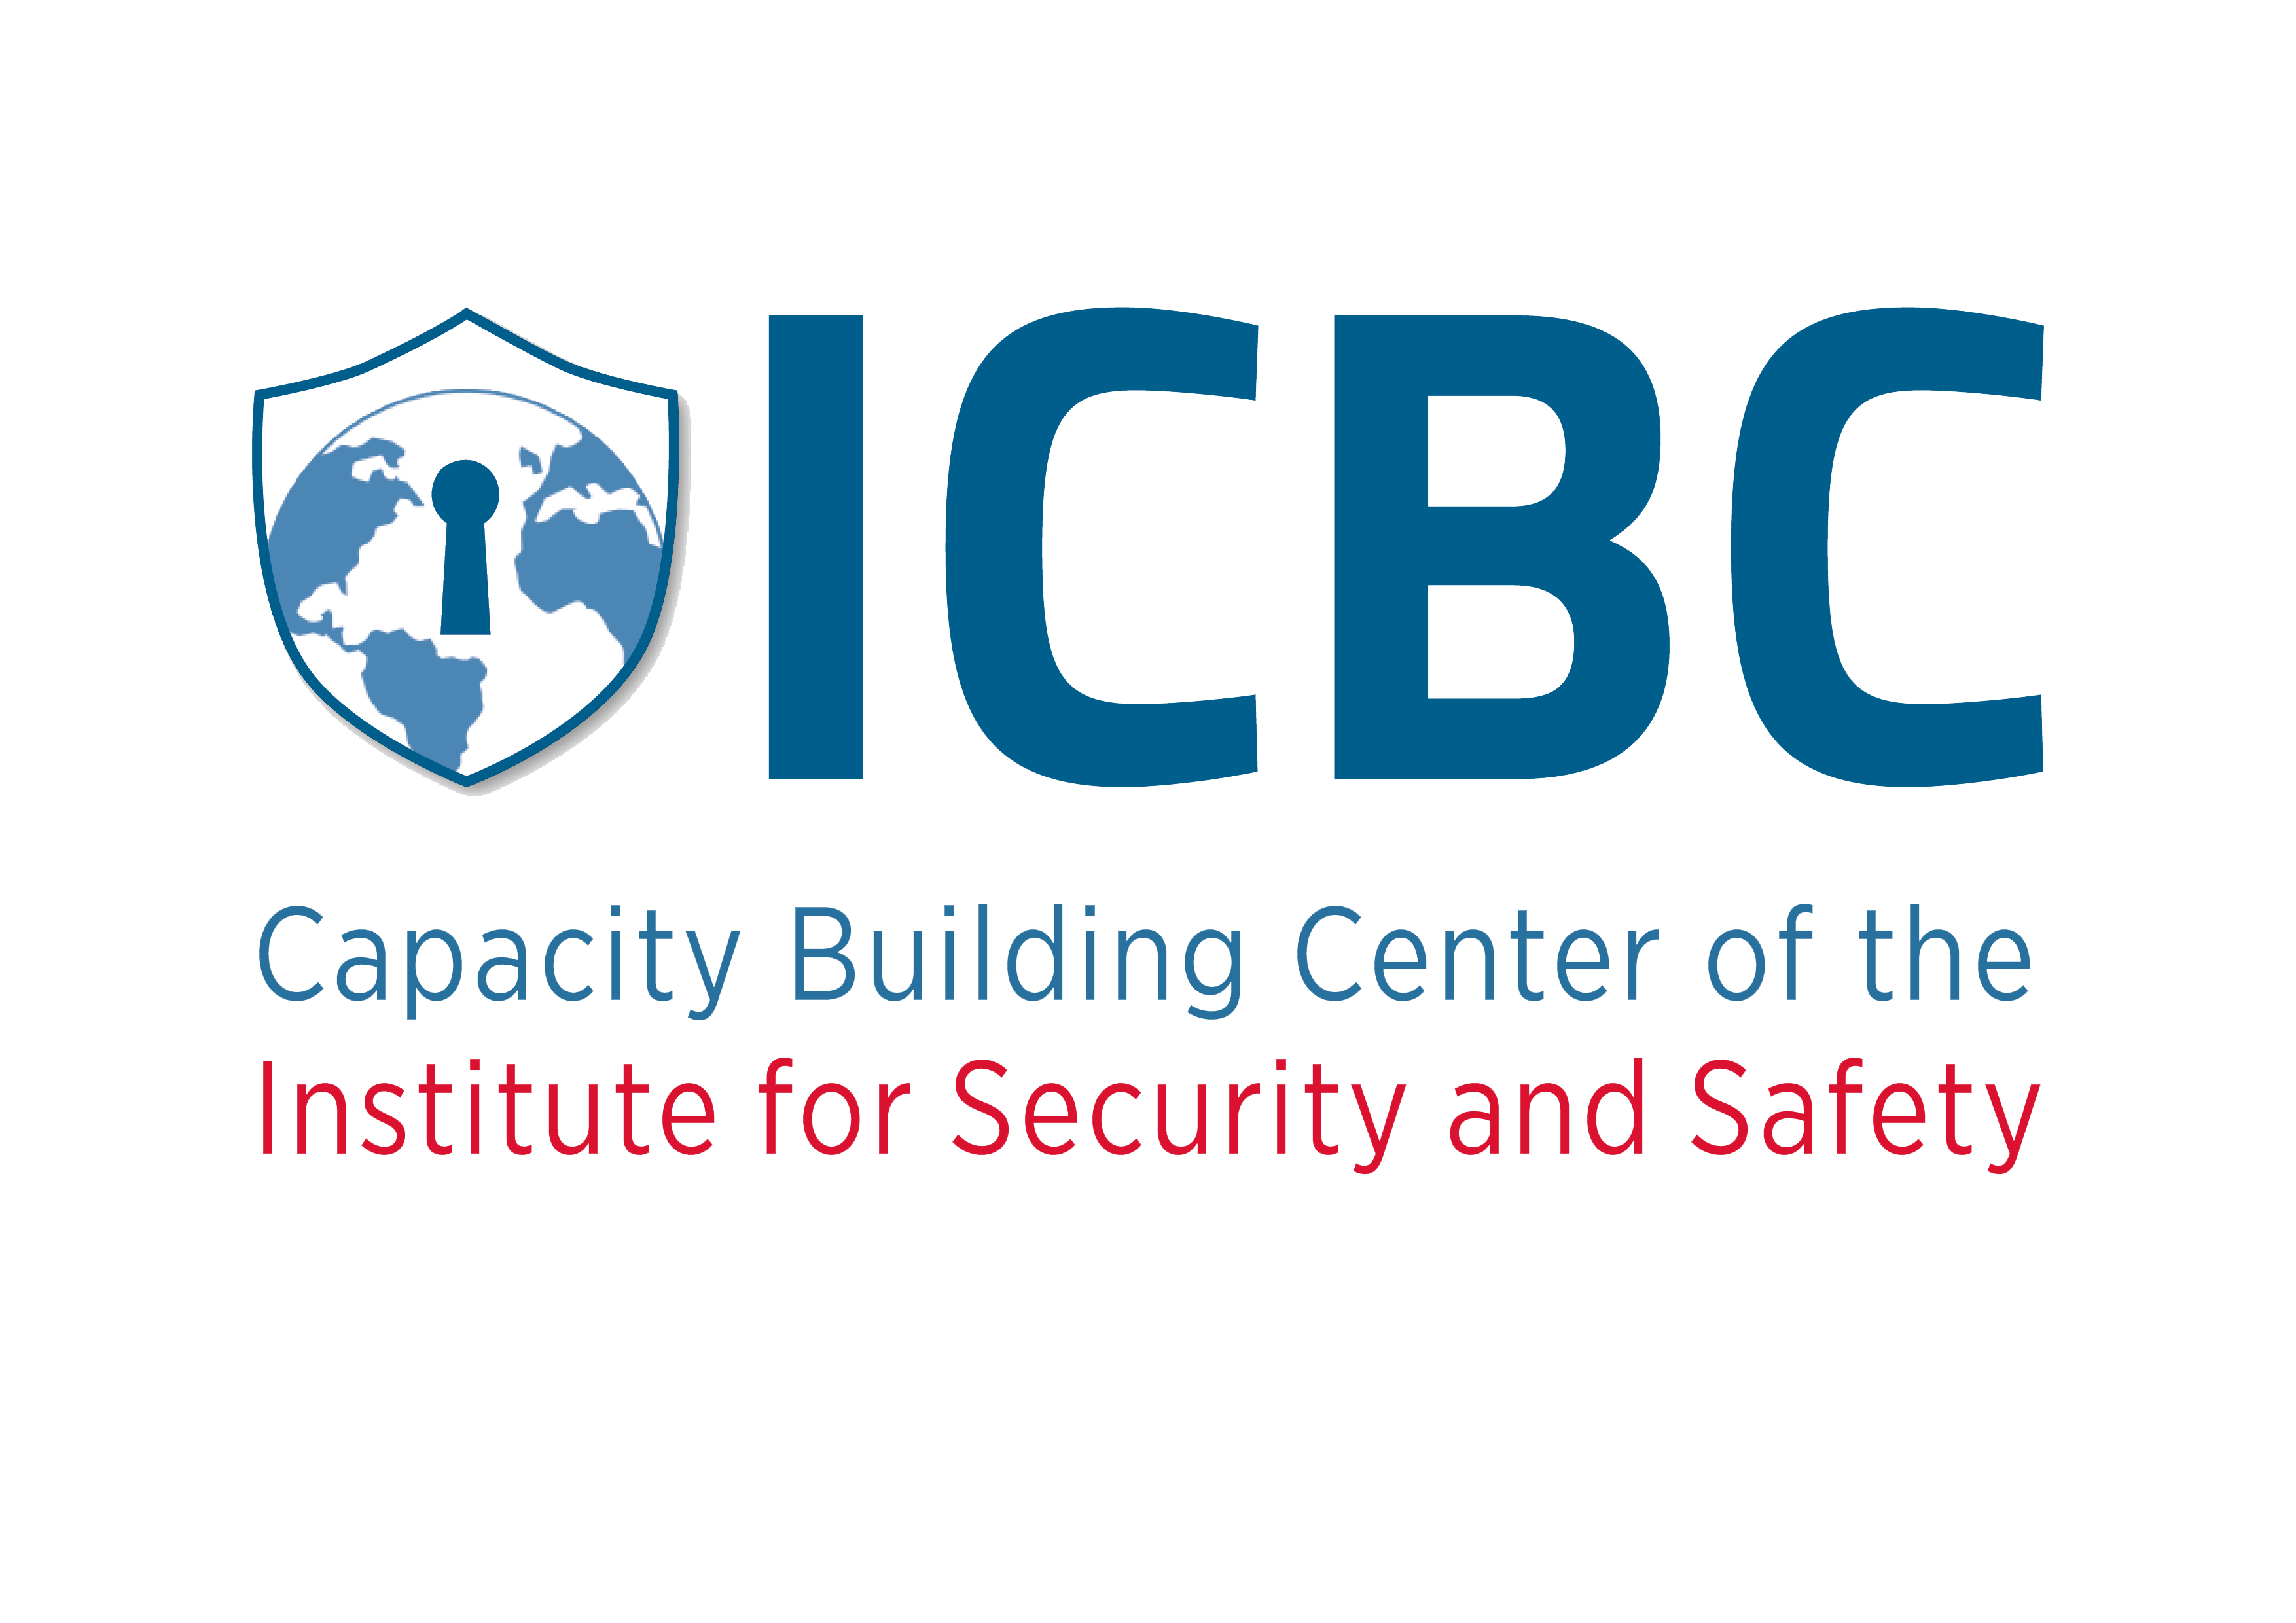 capacity buildings center institute for security and safety icbc iss